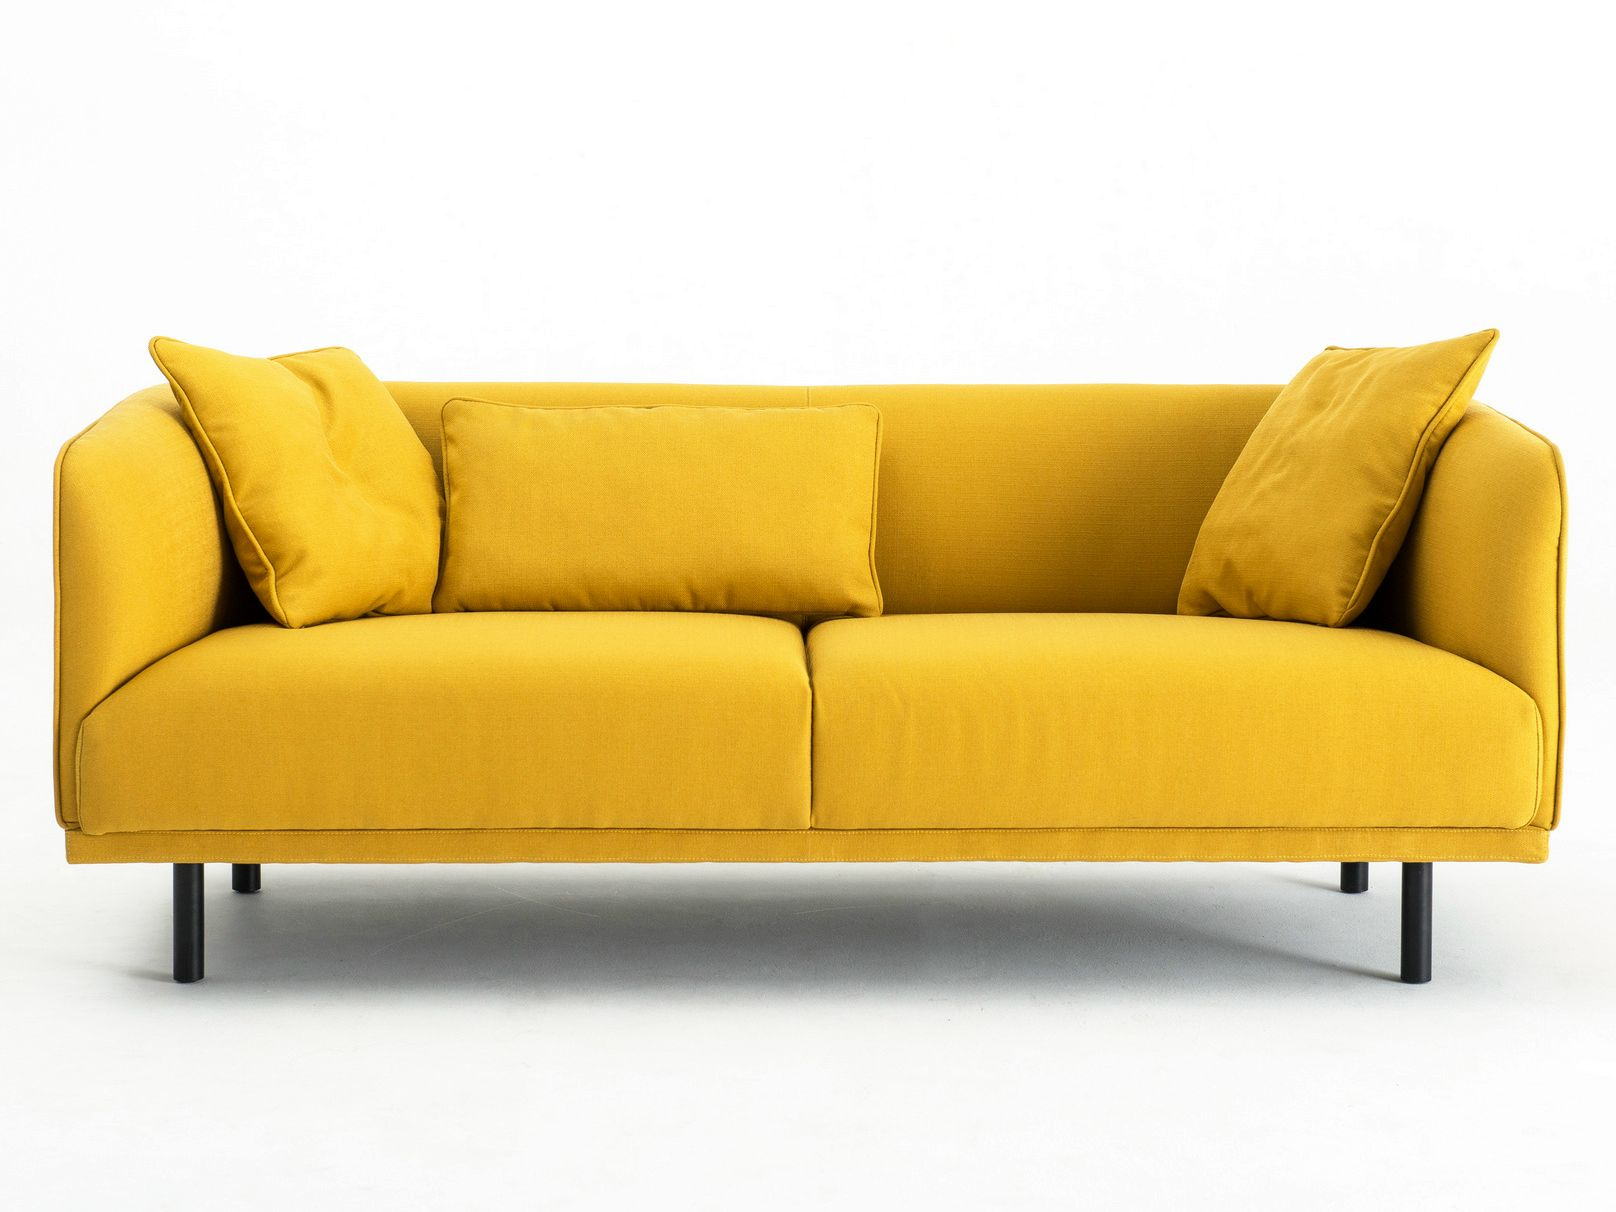 Mart Sofa By Grado Design Furnitures Design Vincenzo Vinci Sofa Design Furniture Sofa